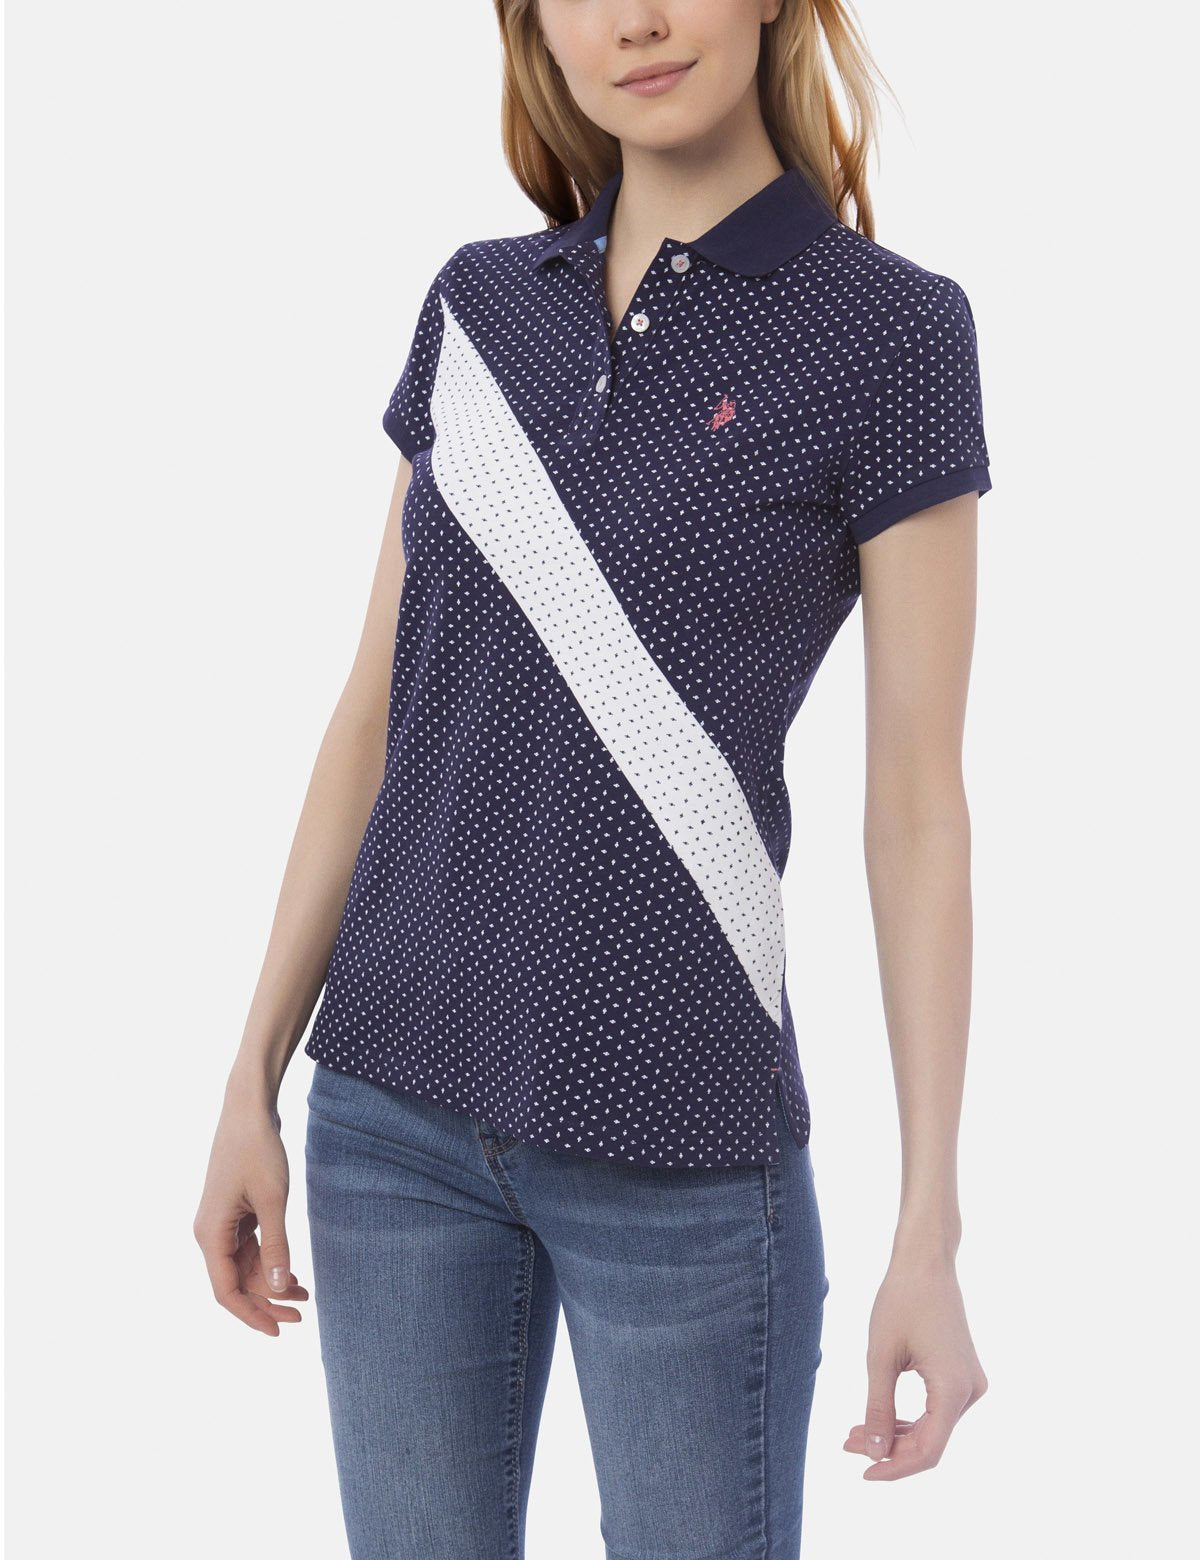 DOT PRINT DIAGONAL STRIPE POLO SHIRT - U.S. Polo Assn.